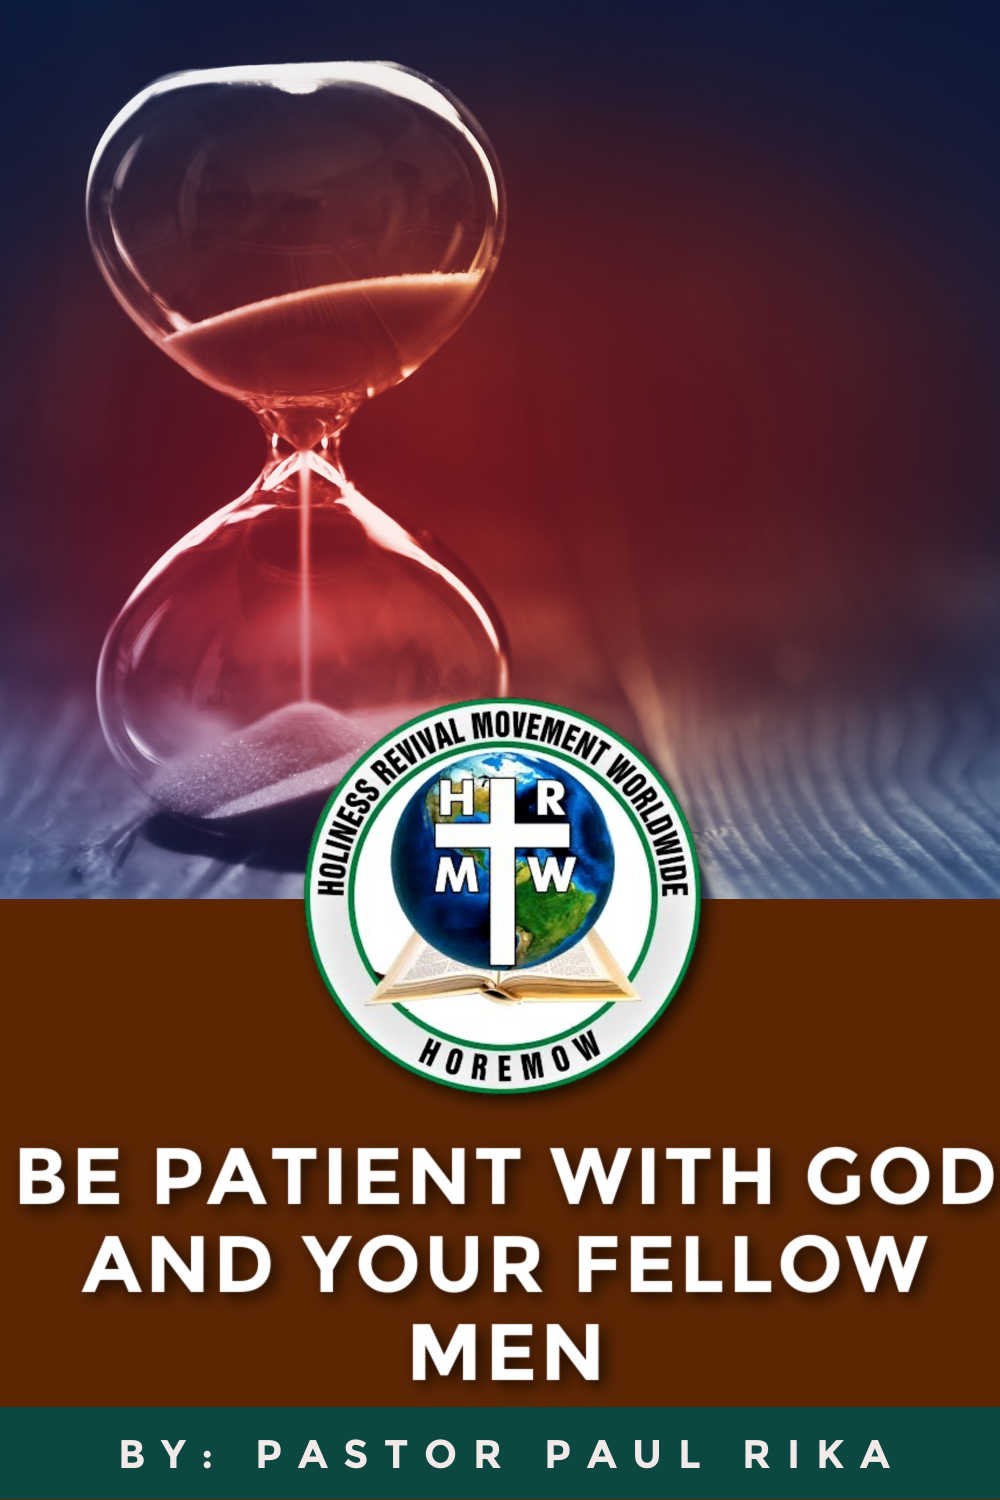 Be patient with God and man